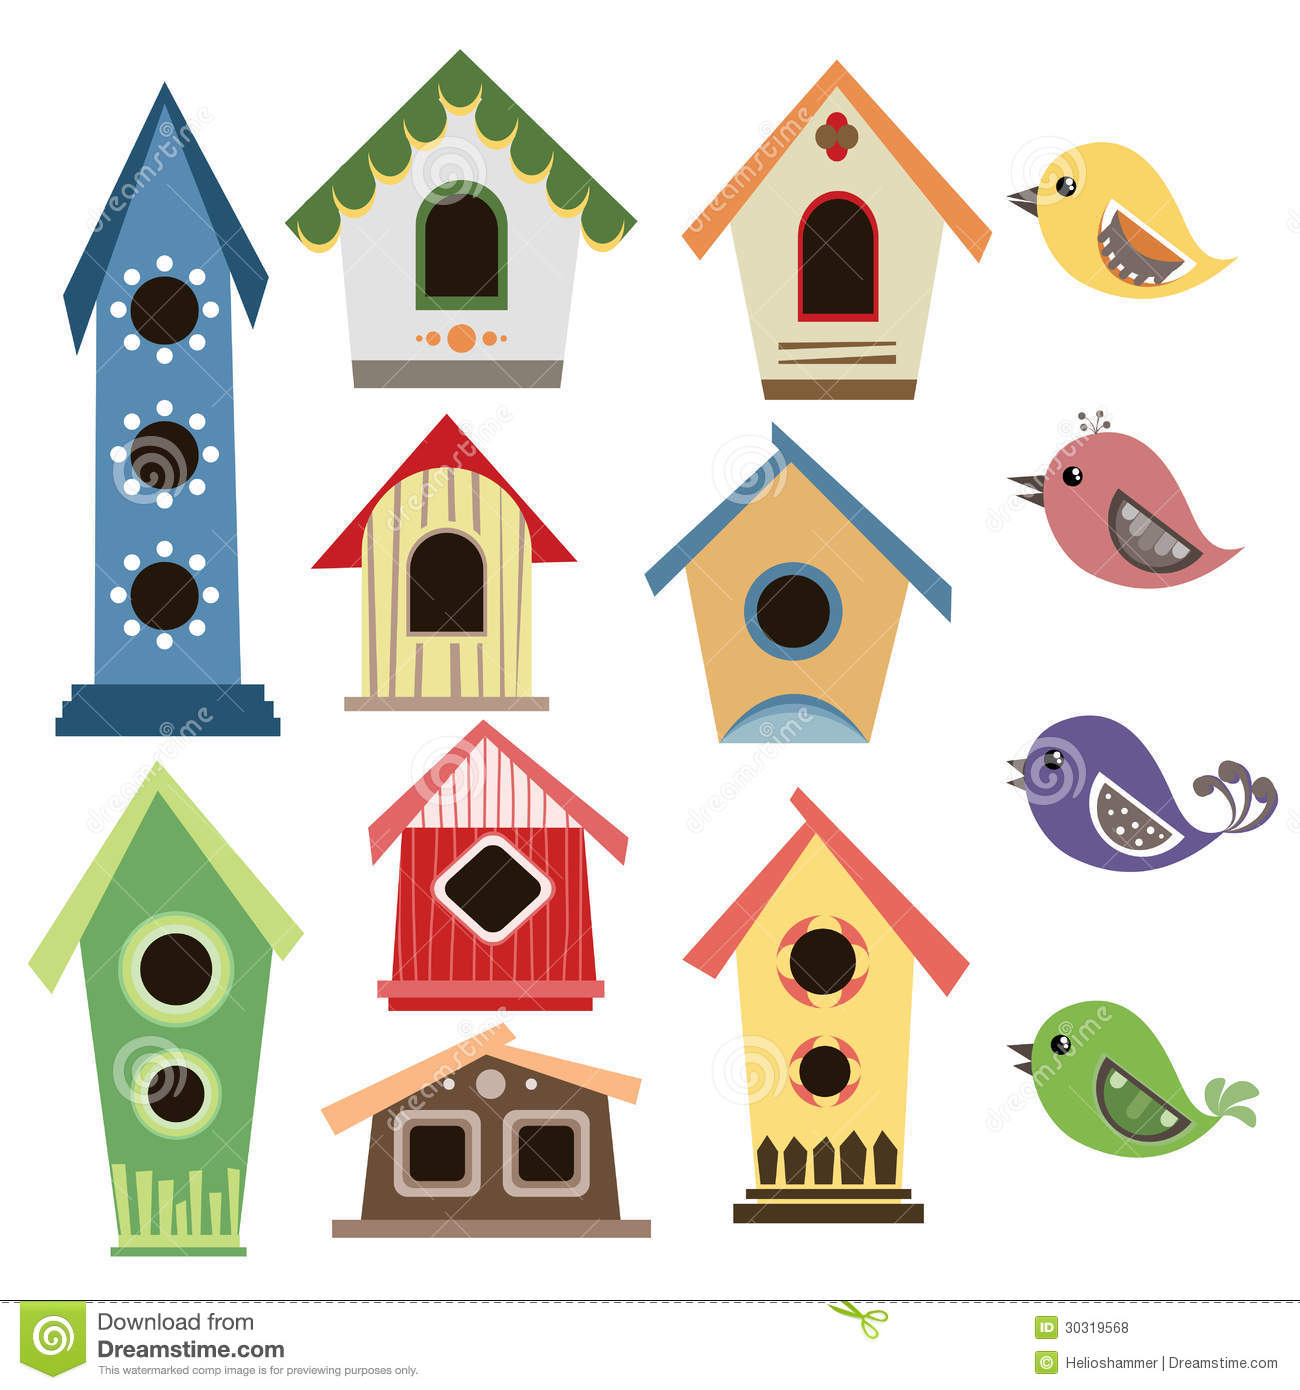 Bird house clipart free download clip art free clip art on - Abstract Birdhouse Set With Birds Royalty Free Stock